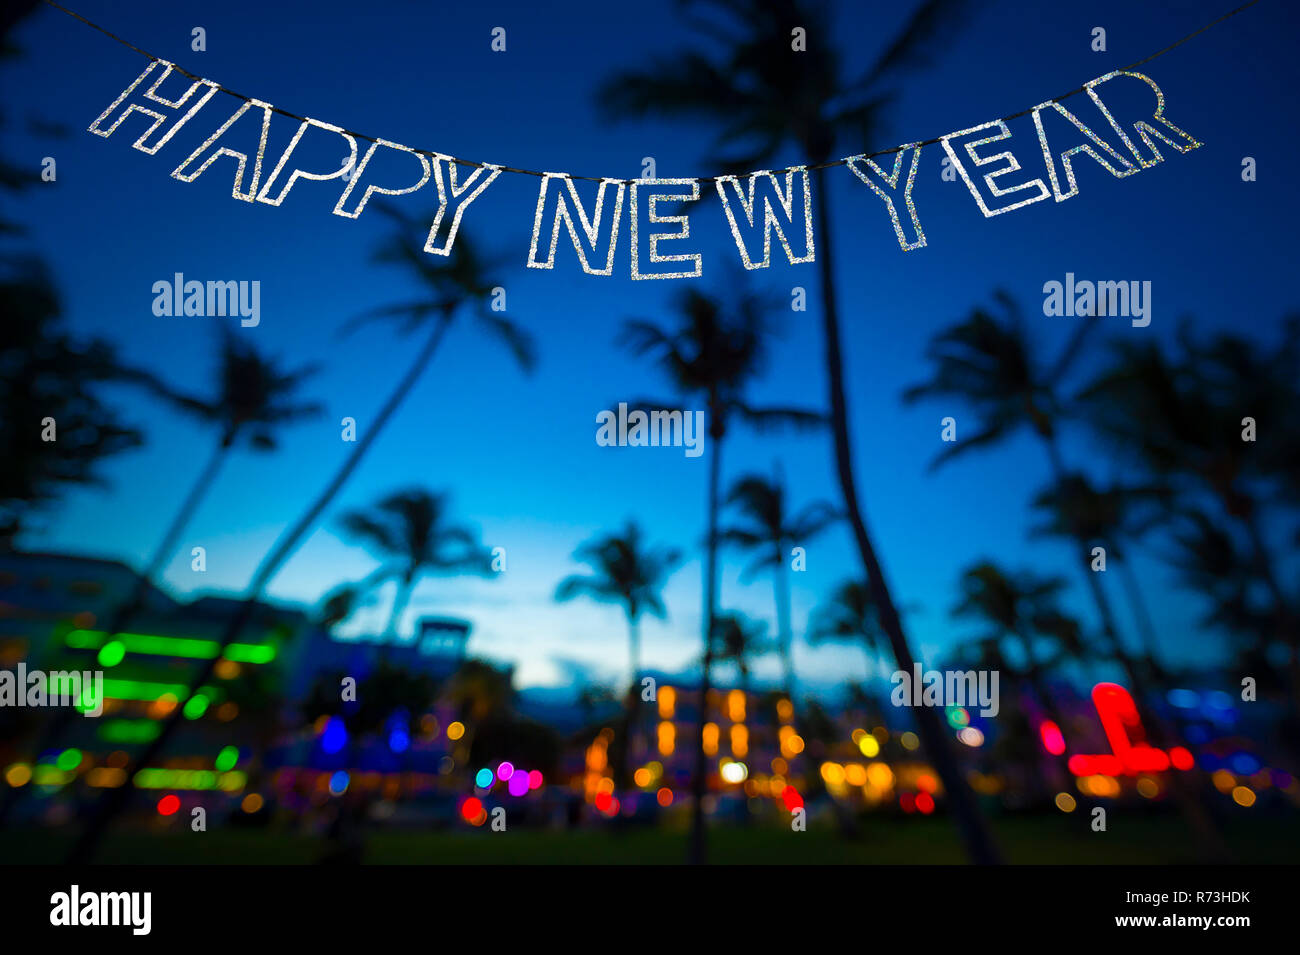 happy new year message hanging in glittery party bunting above tropical palm trees of the glowing